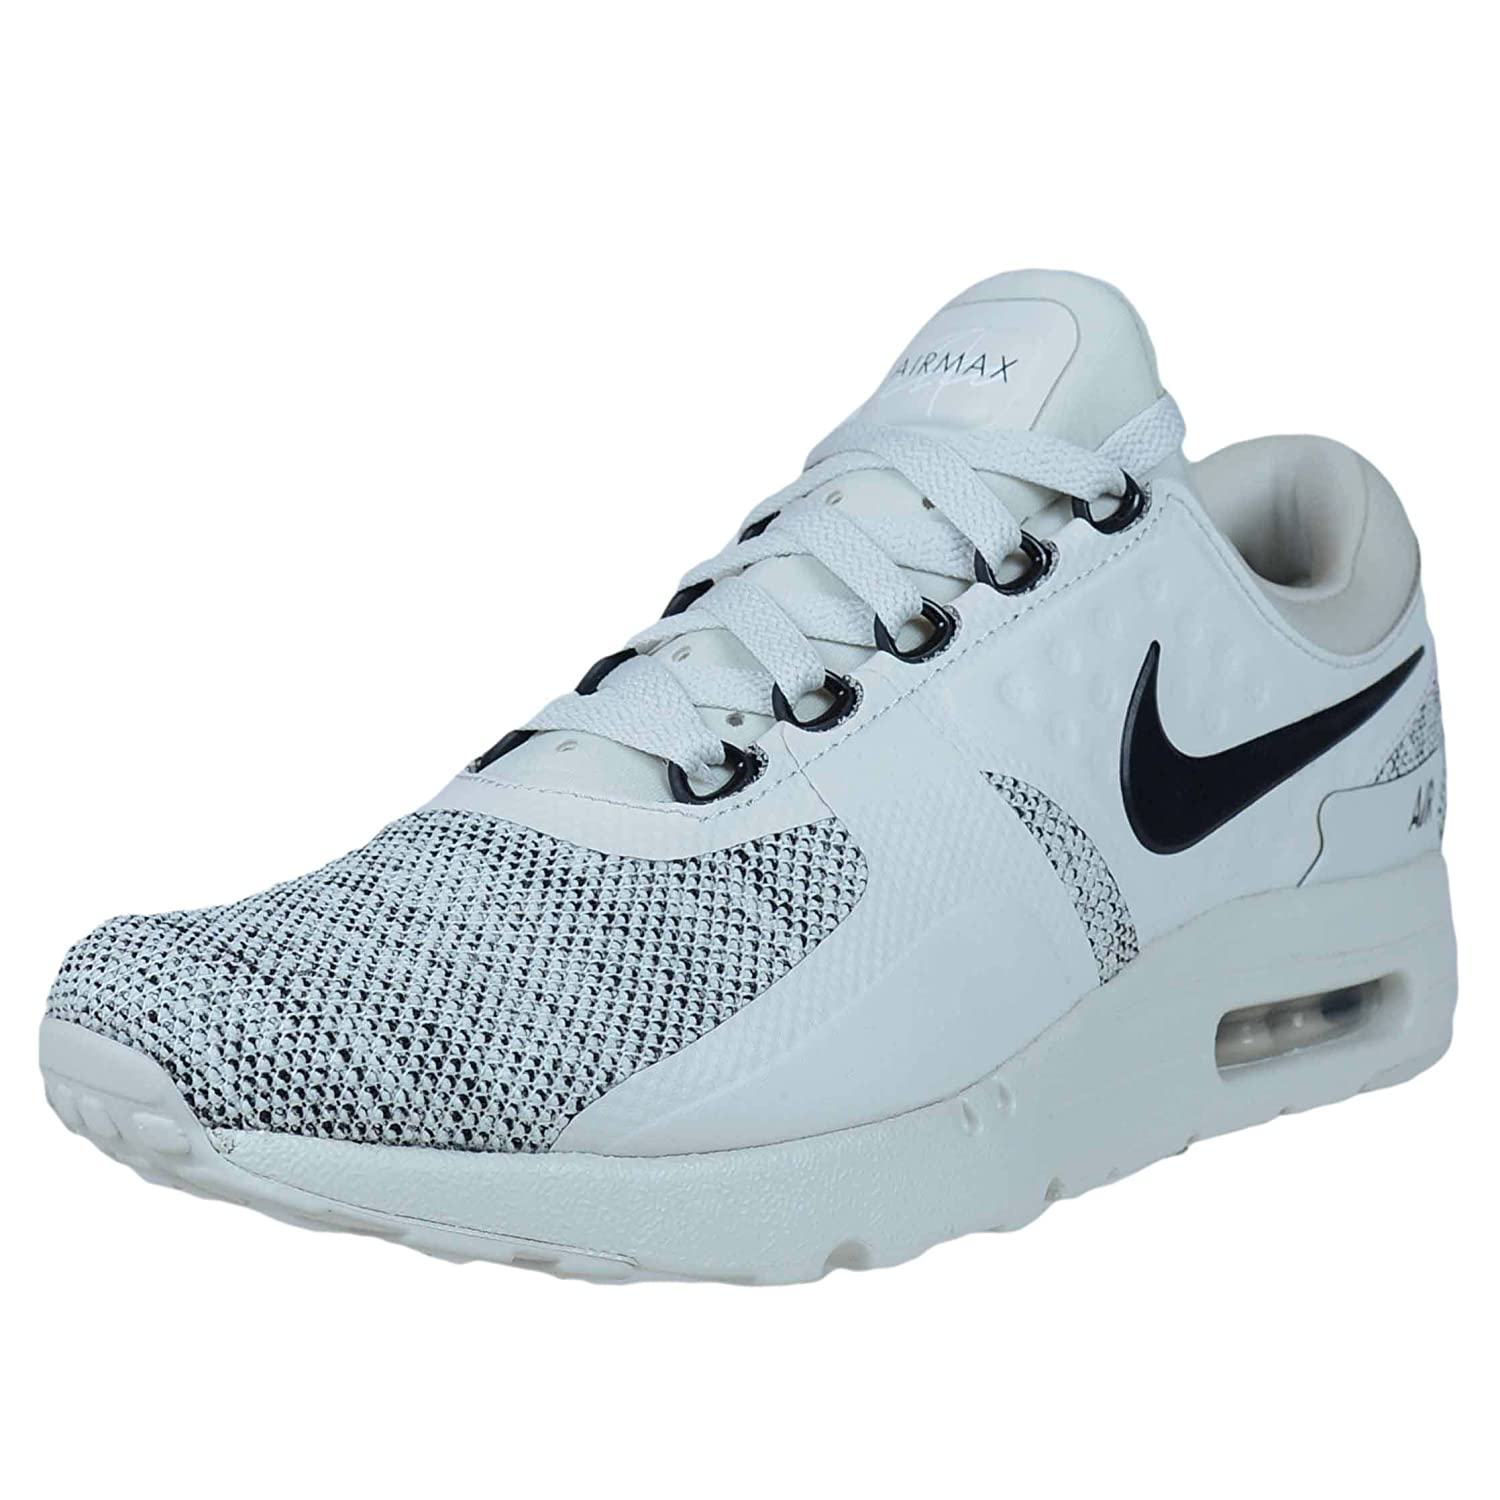 official photos 38e6b 6a06f Nike Men s Air Max Zero SE Light Bone 918232-003 (Size  13) Grey  Buy  Online at Low Prices in India - Amazon.in